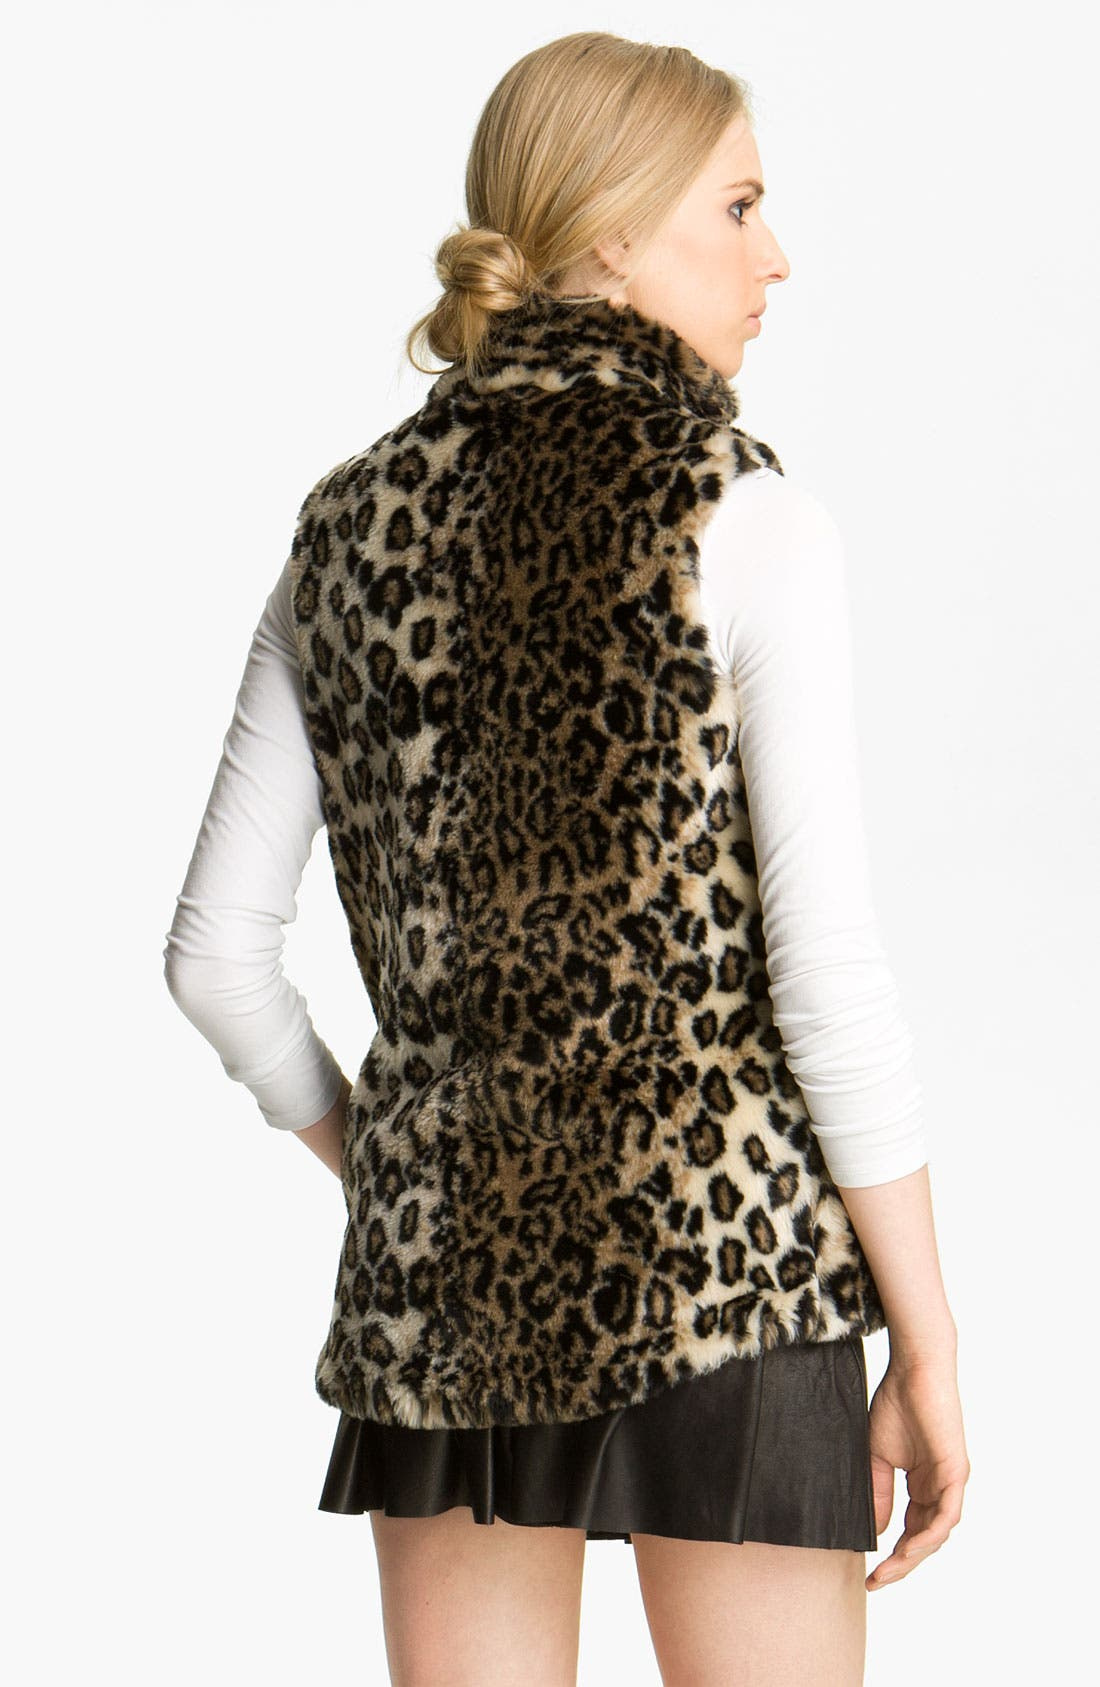 ALICE + OLIVIA,                             'Ettie' Faux Fur Vest,                             Alternate thumbnail 2, color,                             250